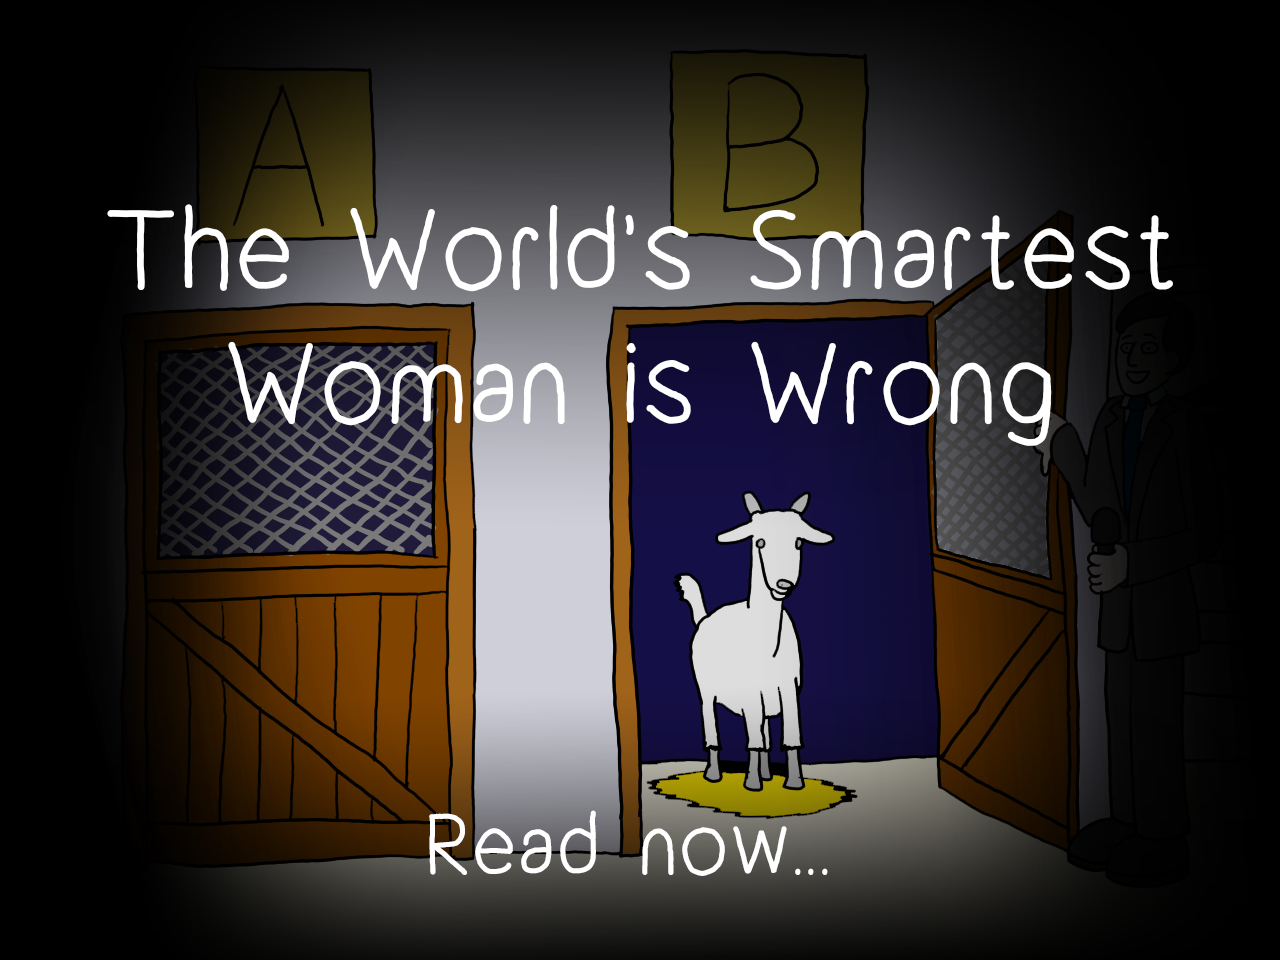 The World's Smartest Woman is Wrong